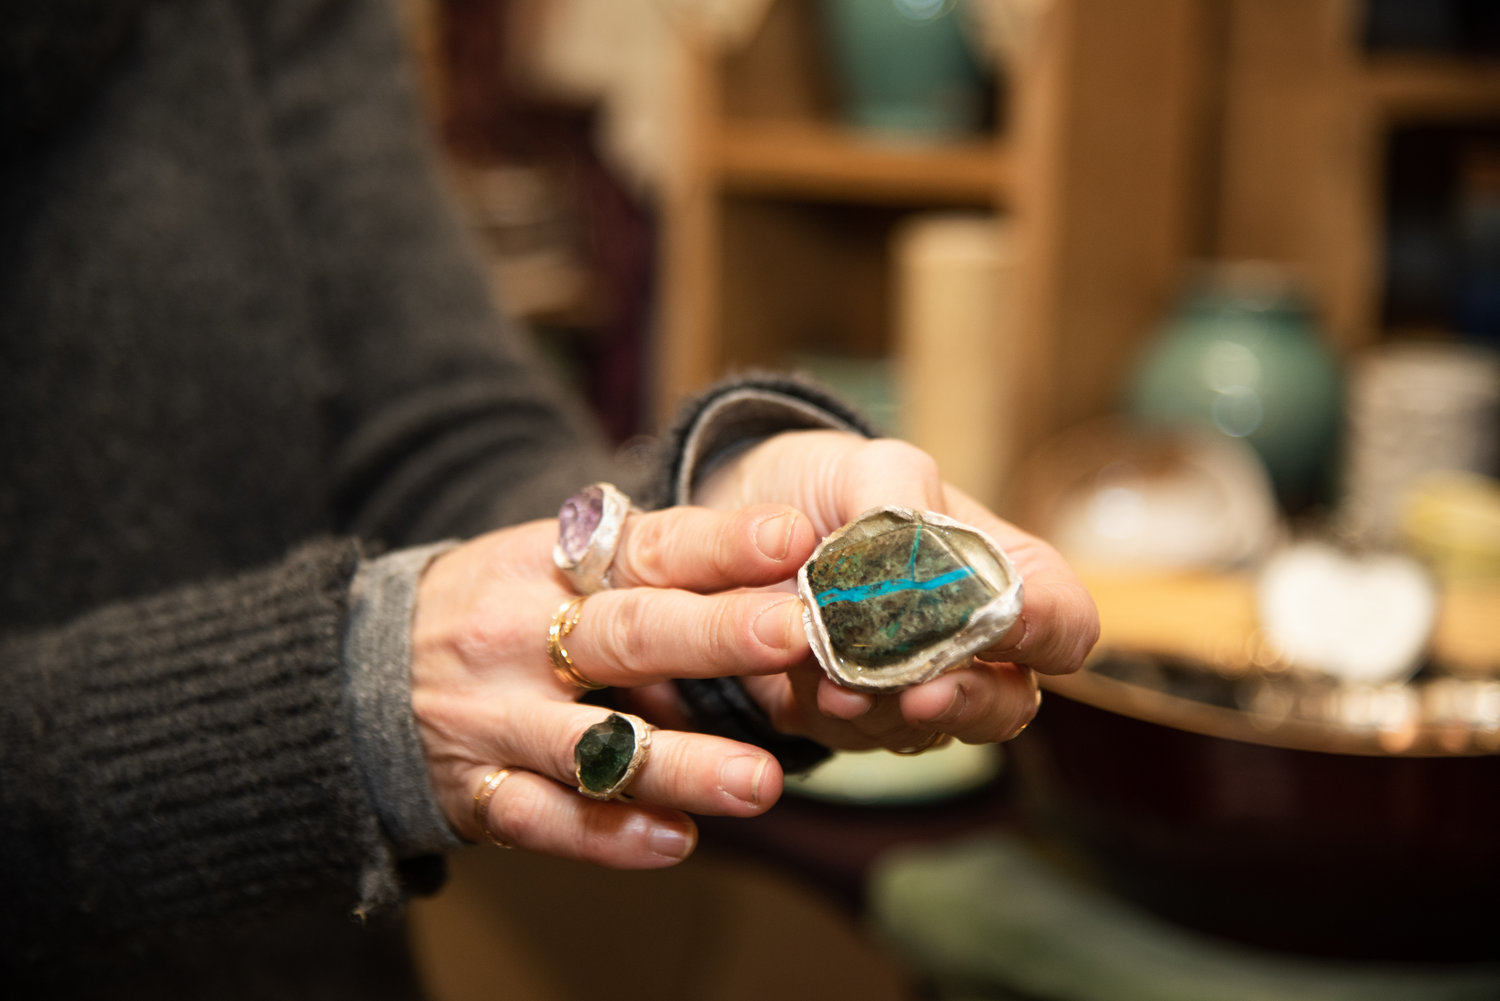 Residents looking to give the perfect gift this holiday can head to Peace Soap Studio to shop from an array of items, such as handcrafted goods, clothing and jewelry.